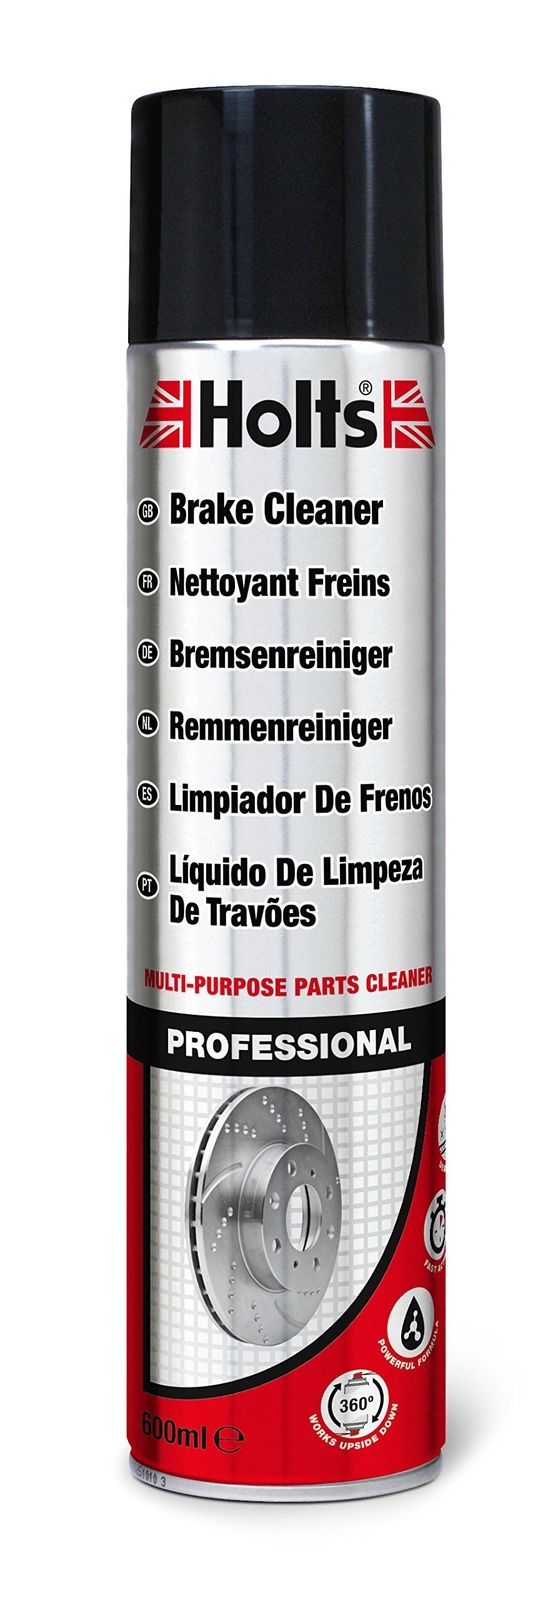 4 x CAR BRAKE CLEANER CLEAN DUST DIRT GRIME REMOVER CLEANING SPRAY 600ml | eBay